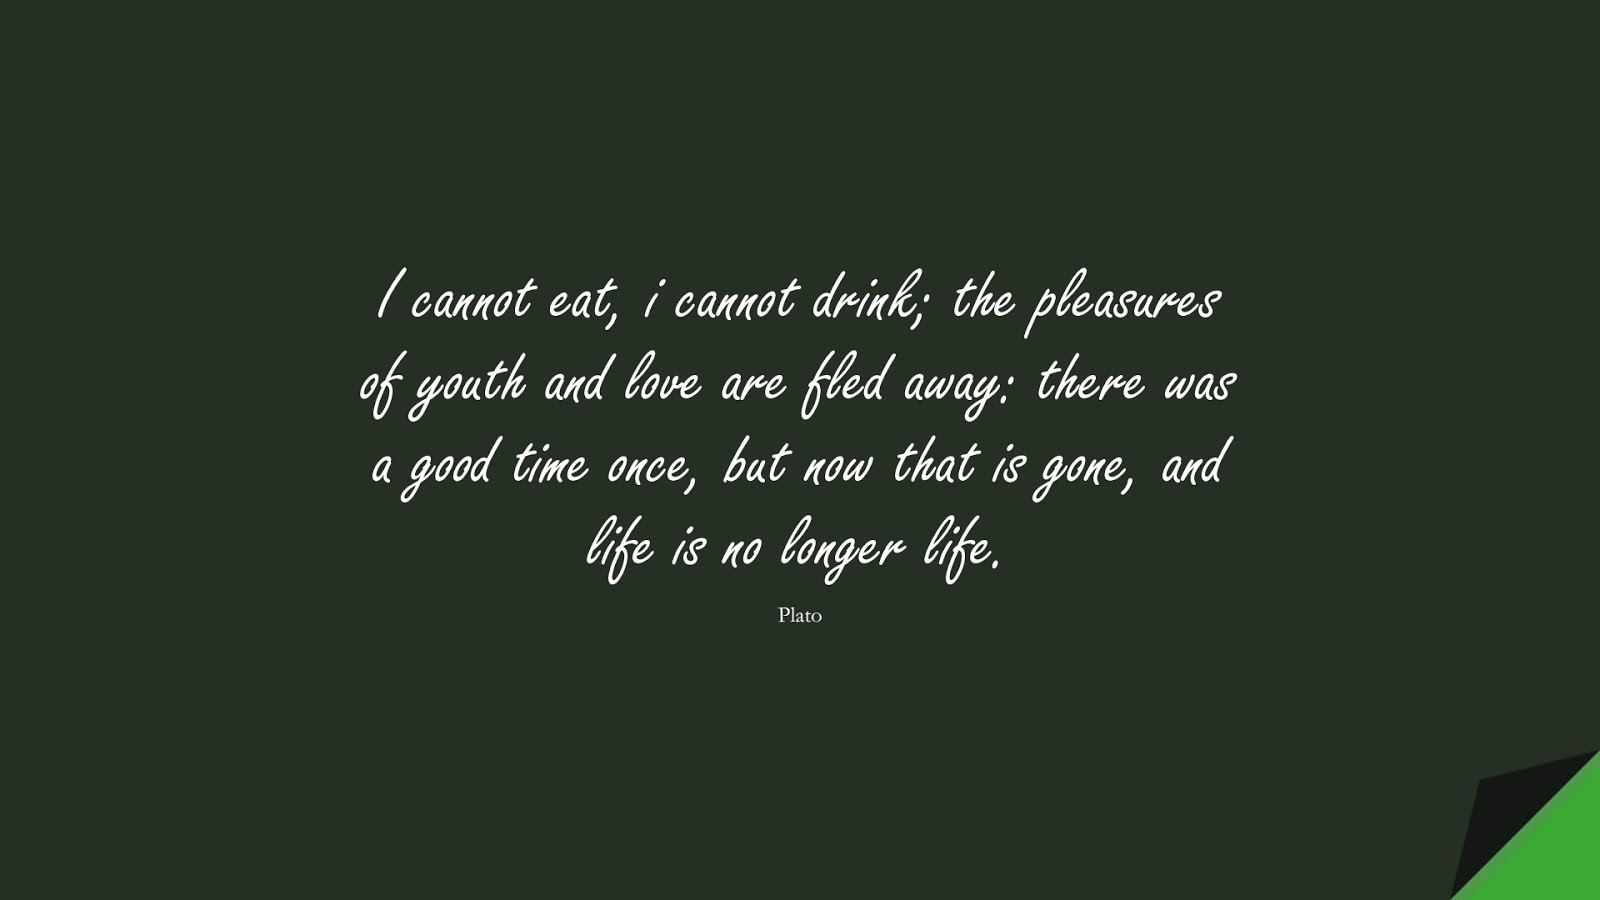 I cannot eat, i cannot drink; the pleasures of youth and love are fled away: there was a good time once, but now that is gone, and life is no longer life. (Plato);  #SadLoveQuotes